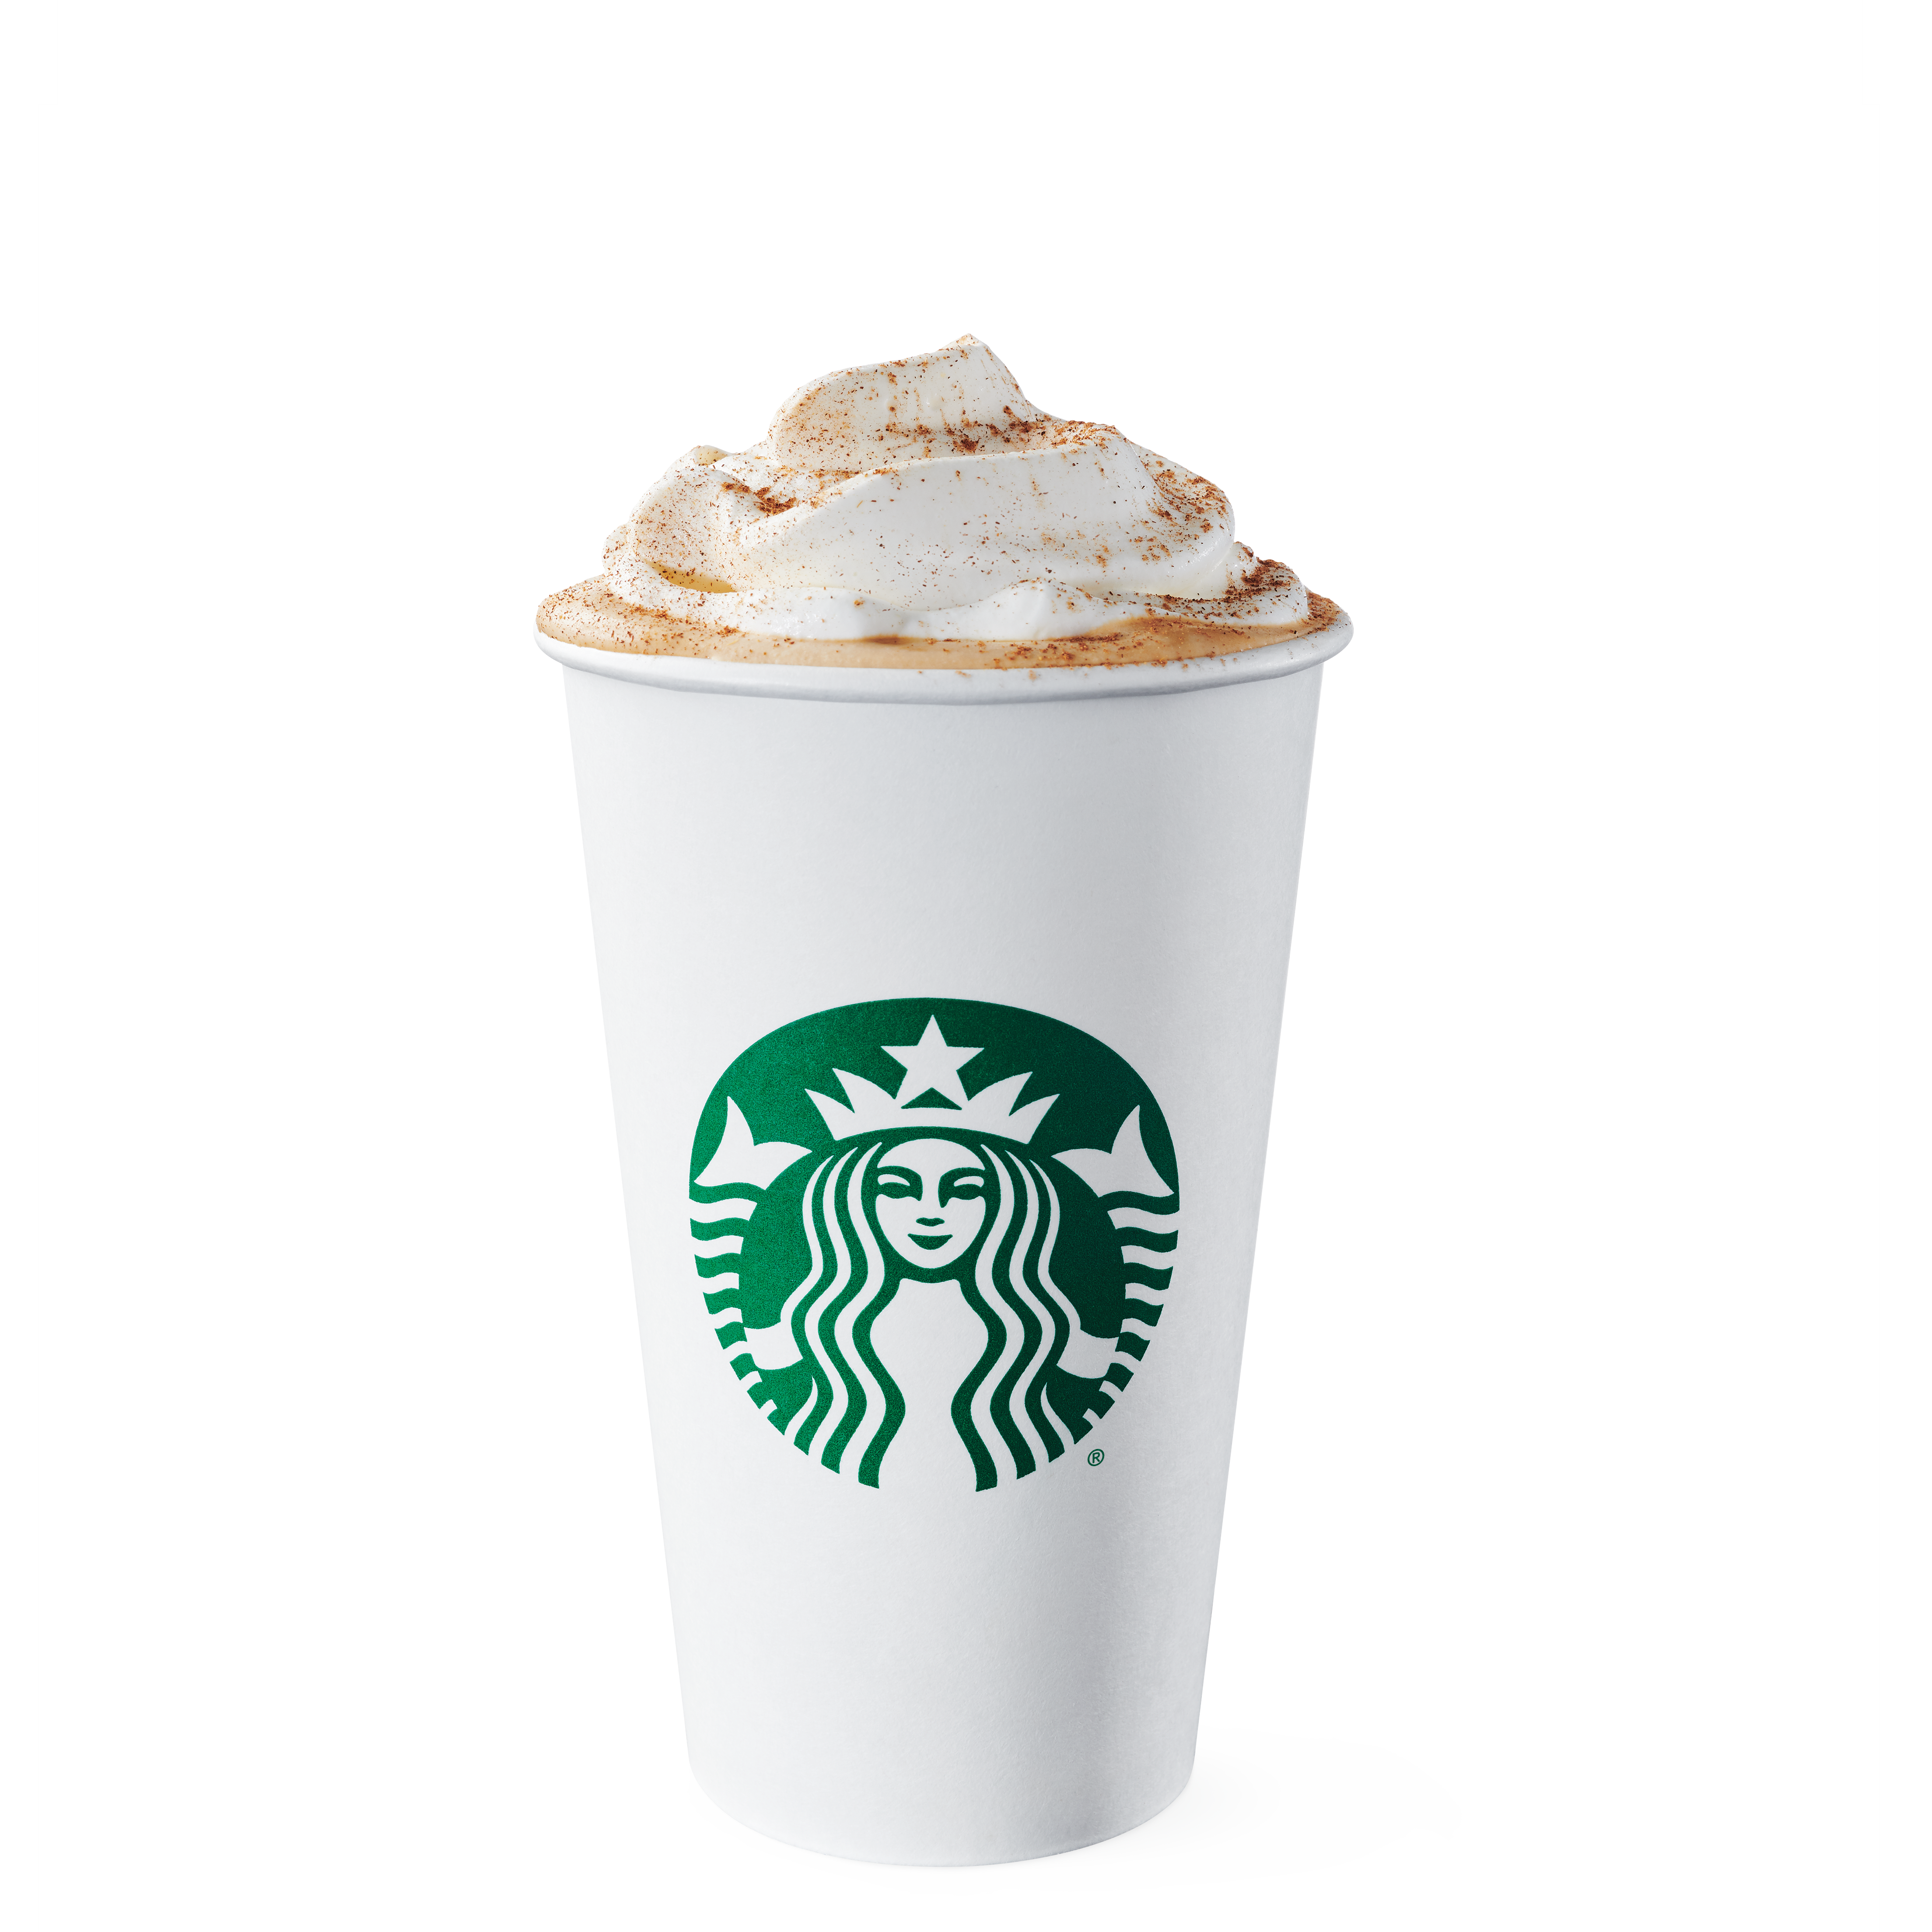 Starbucks Pumpkin Spice Latte Is Returning To Stores